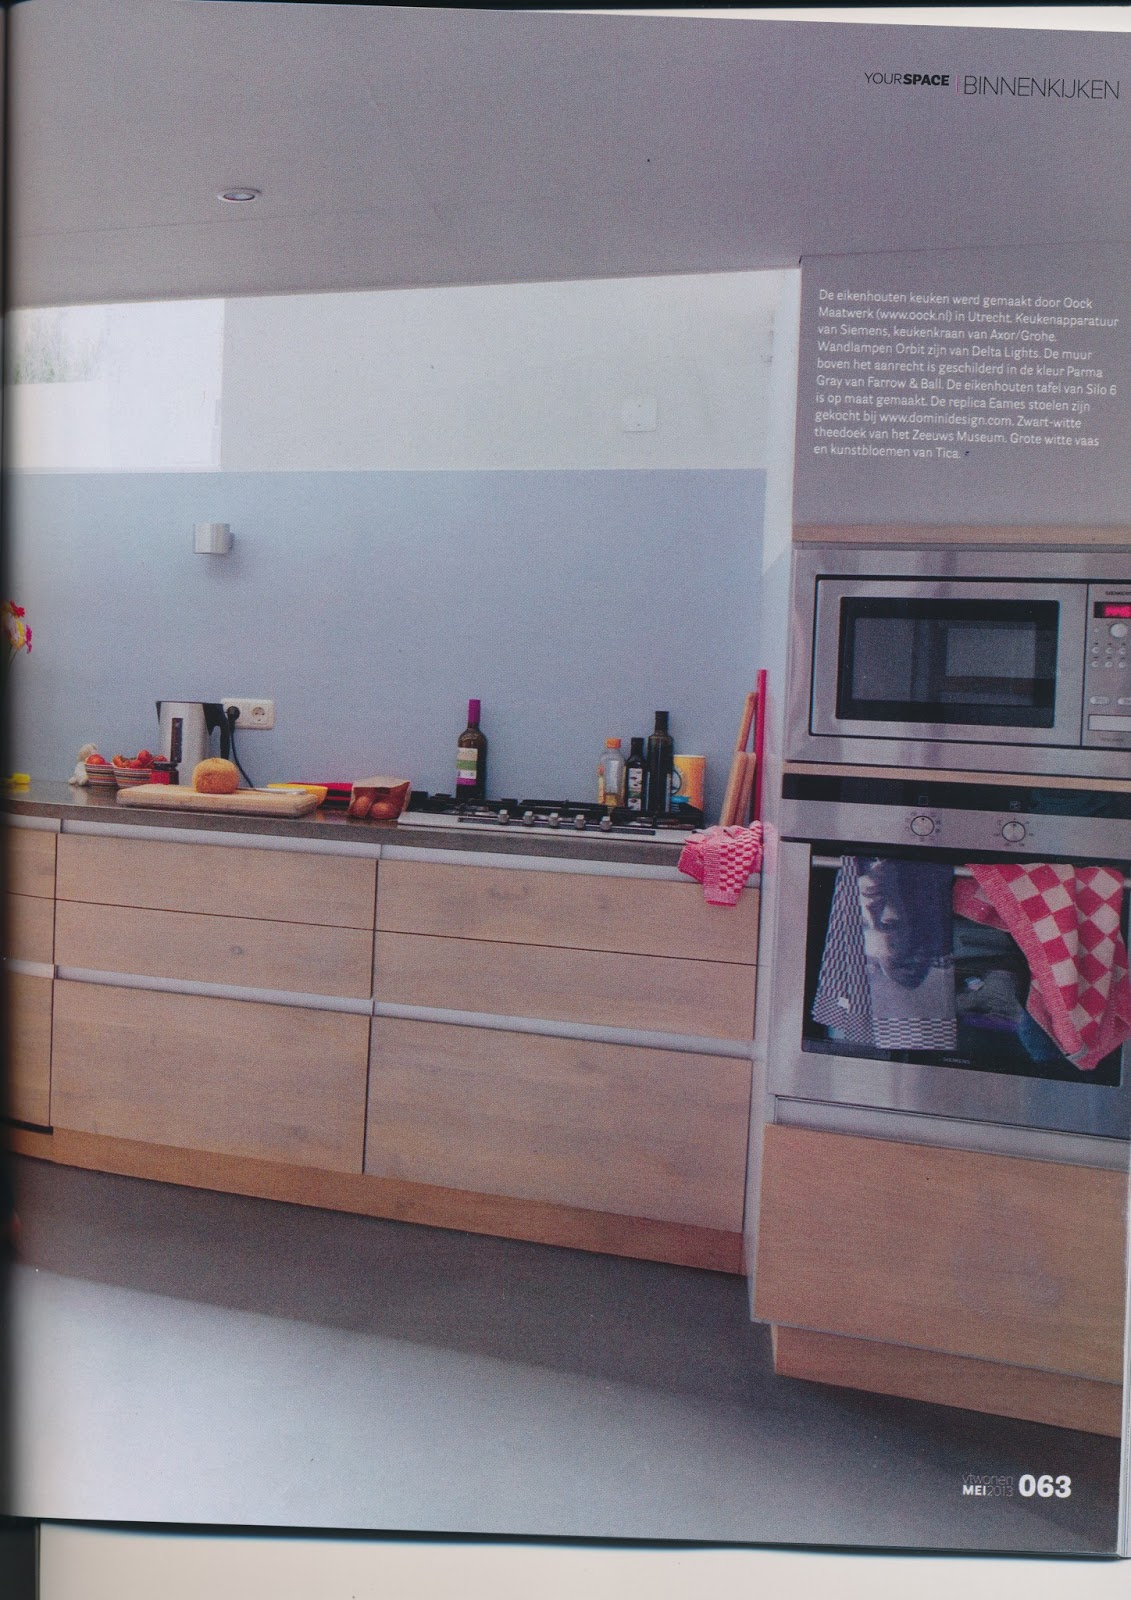 Used Kitchen Cabinets Vt Houten Keuken Our Own Oock Kitchen In The May Issue Of Vt